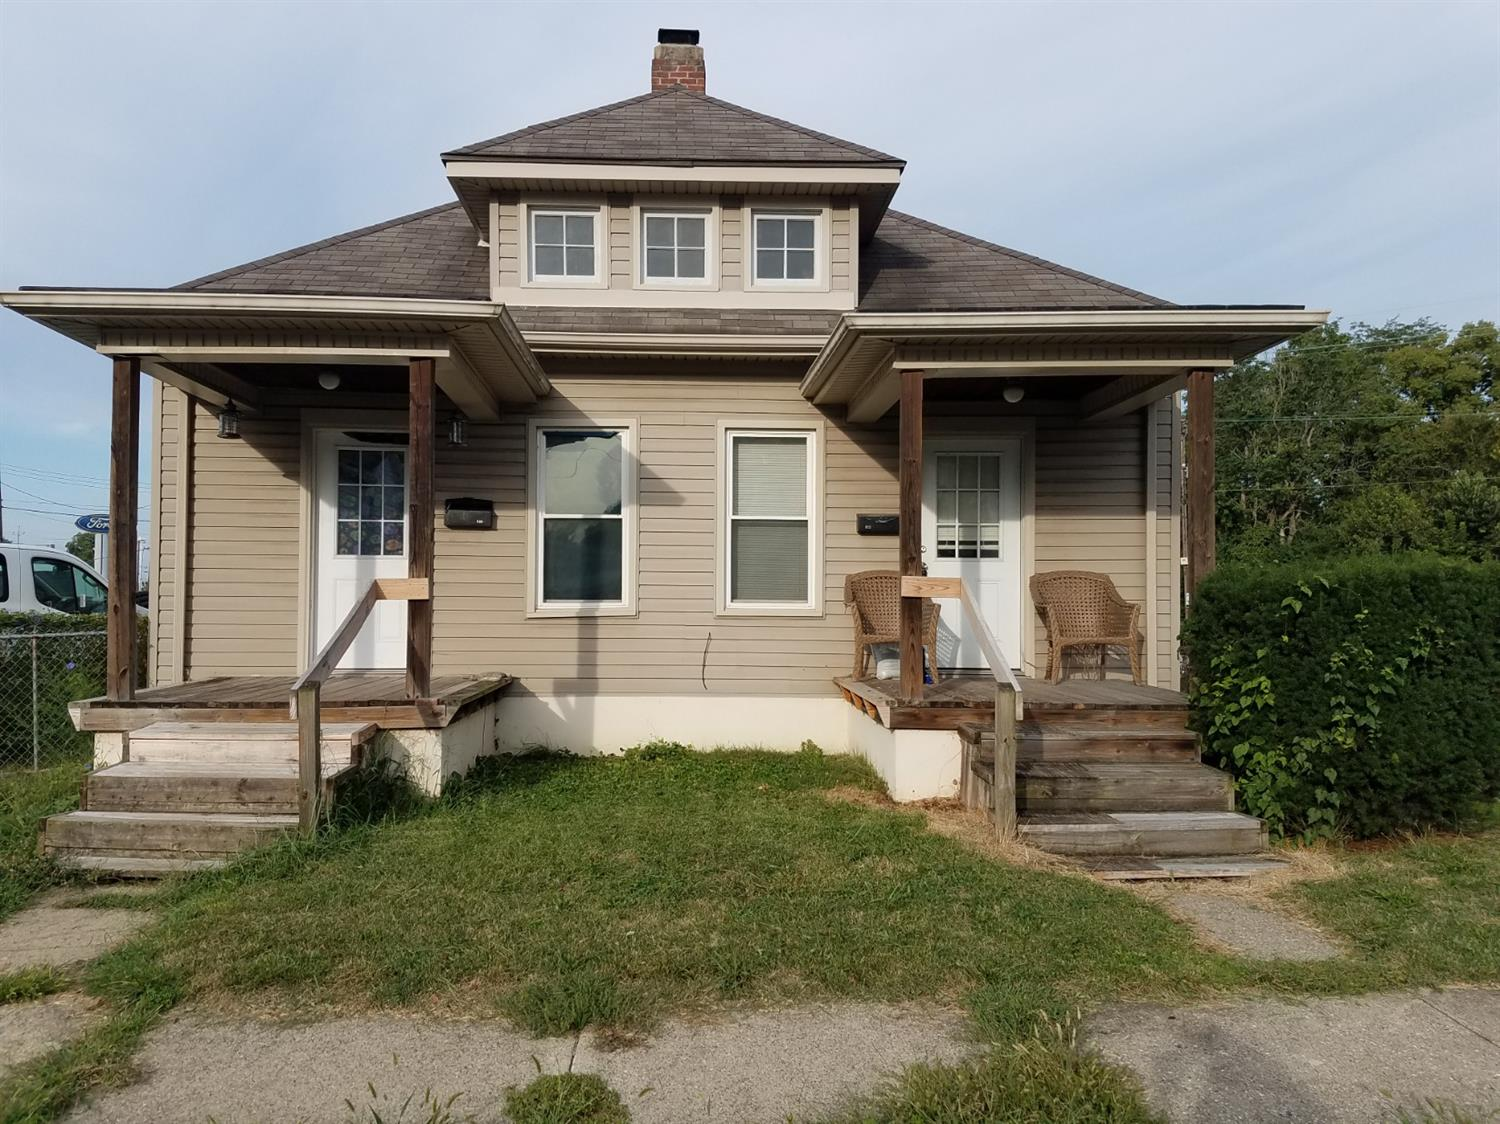 920 922 Beech St Middletown OH